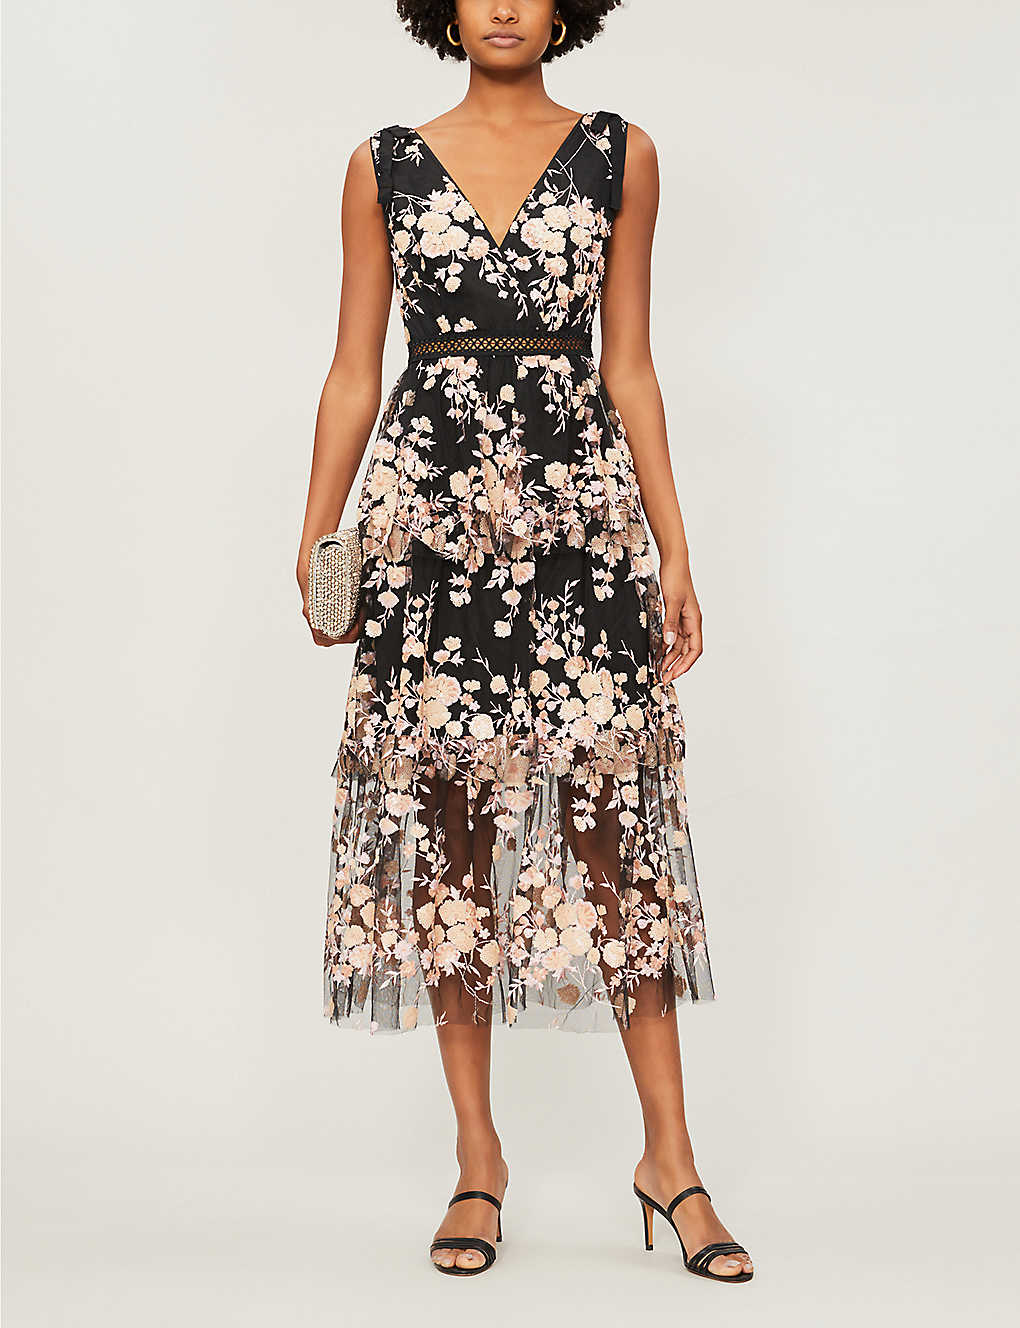 SELF-PORTRAIT Tiered Sequinned Floral Mesh Midi Black Dress